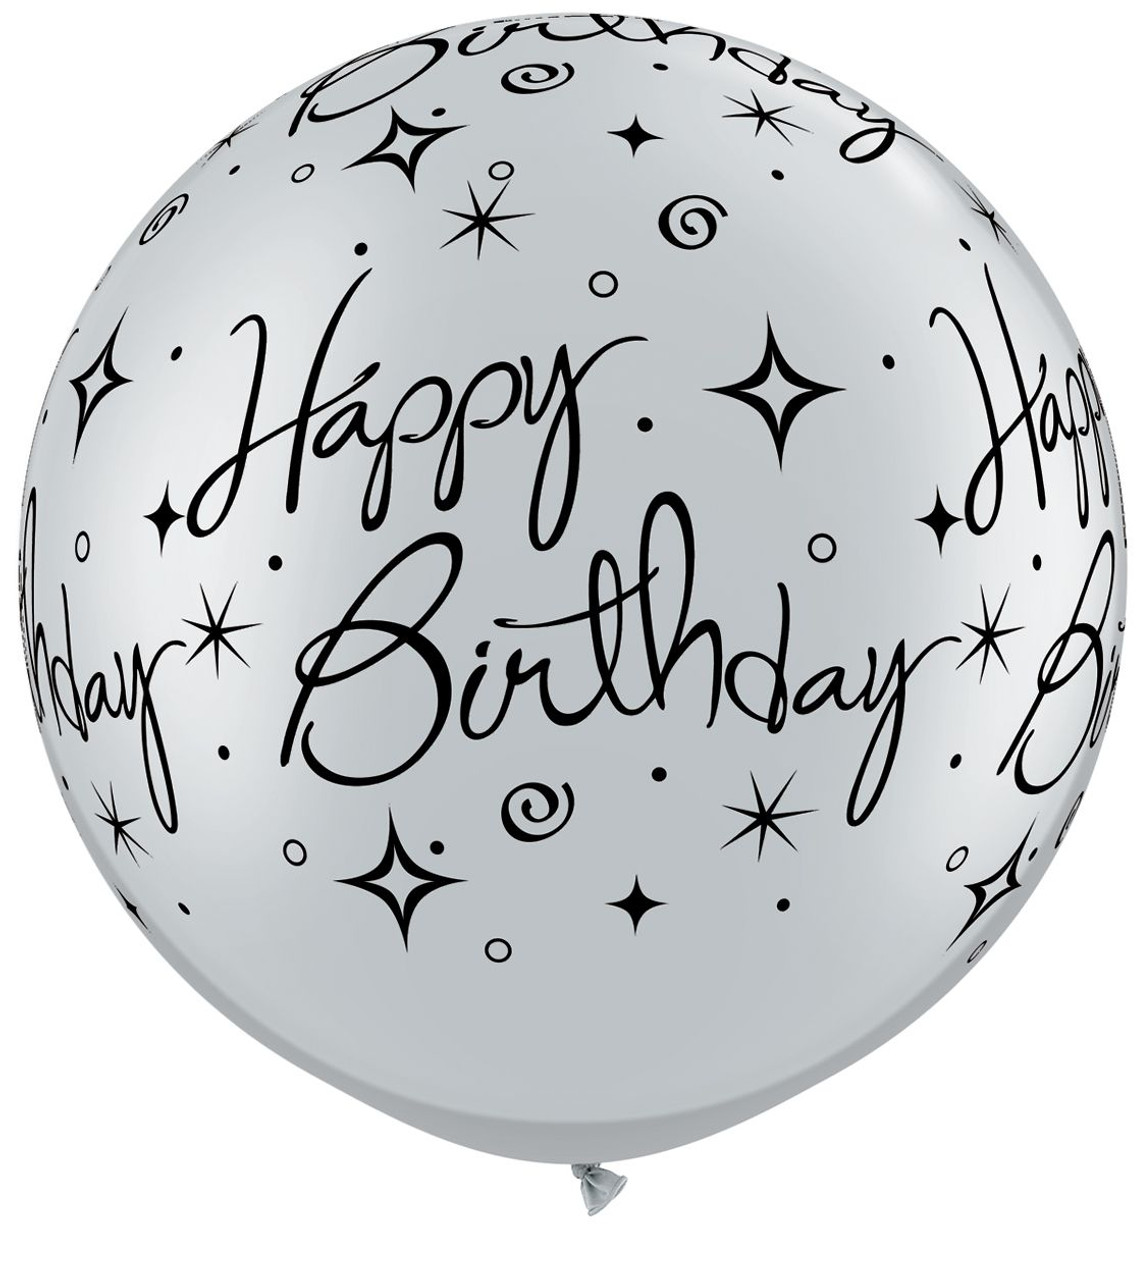 30 round Silver and Black Birthday Balloons. a